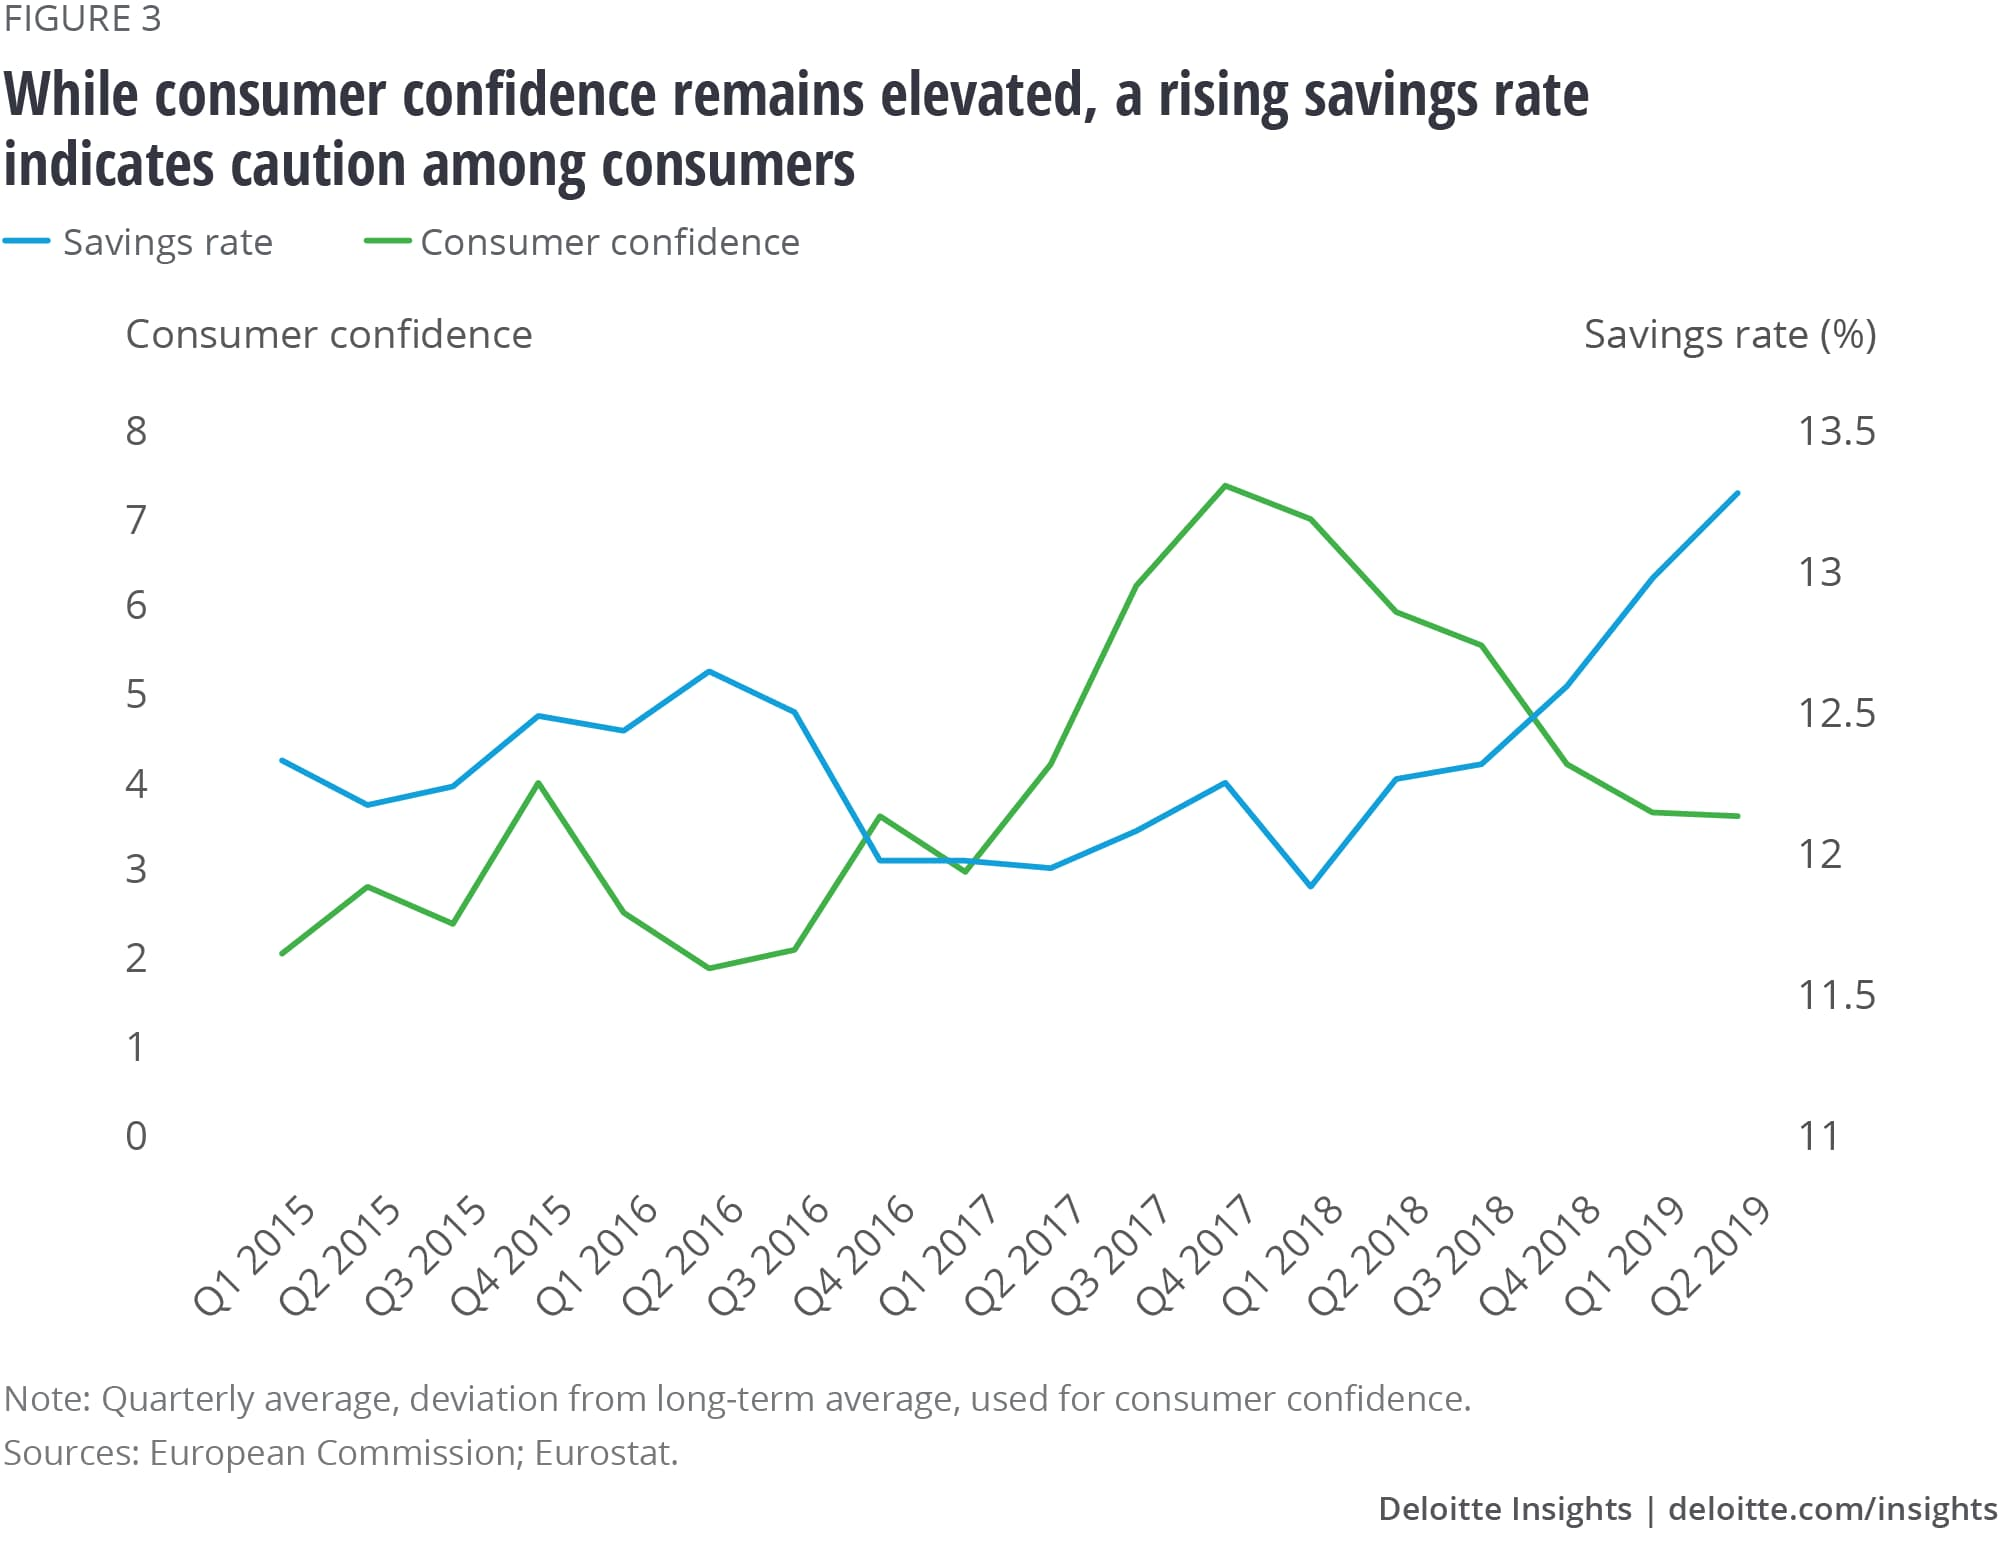 While consumer confidence remains elevated, an increasing savings rate indicates caution among consumers